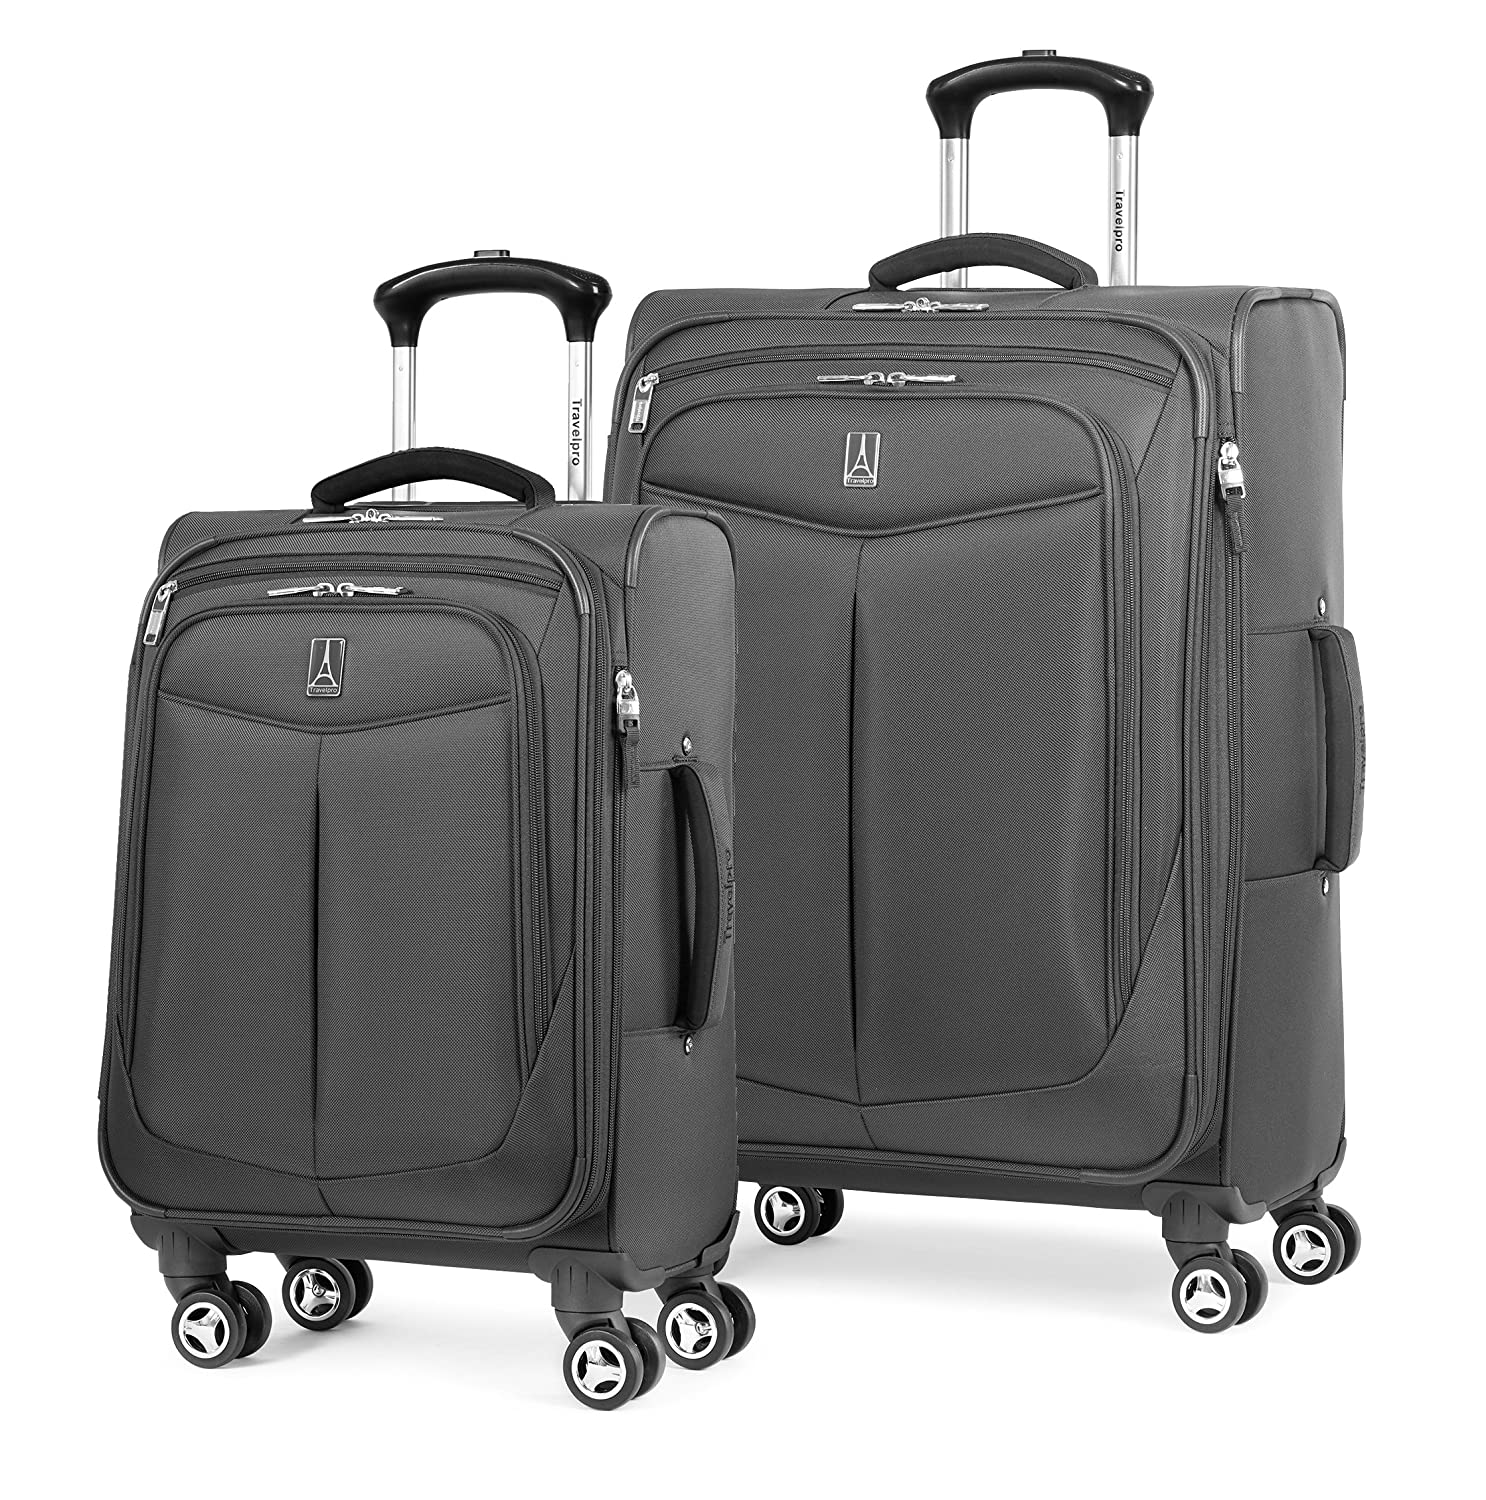 b7e9d2347d31 Travelpro Inflight 2 Piece Spinner Luggage Set, Black